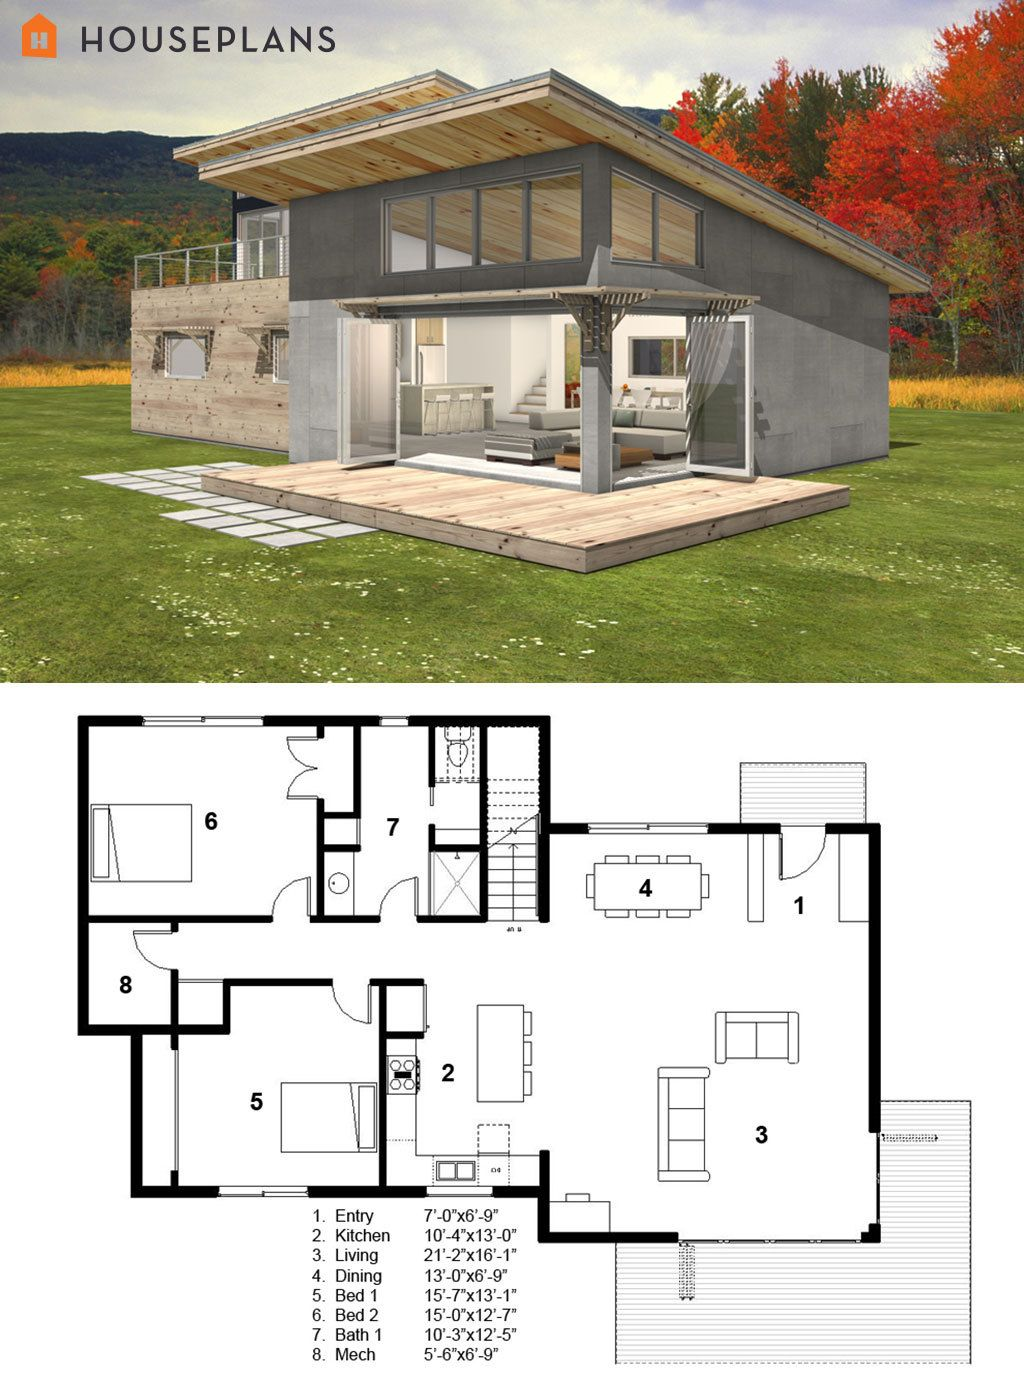 Small modern cabin house plan by freegreen energy for Small energy efficient home plans